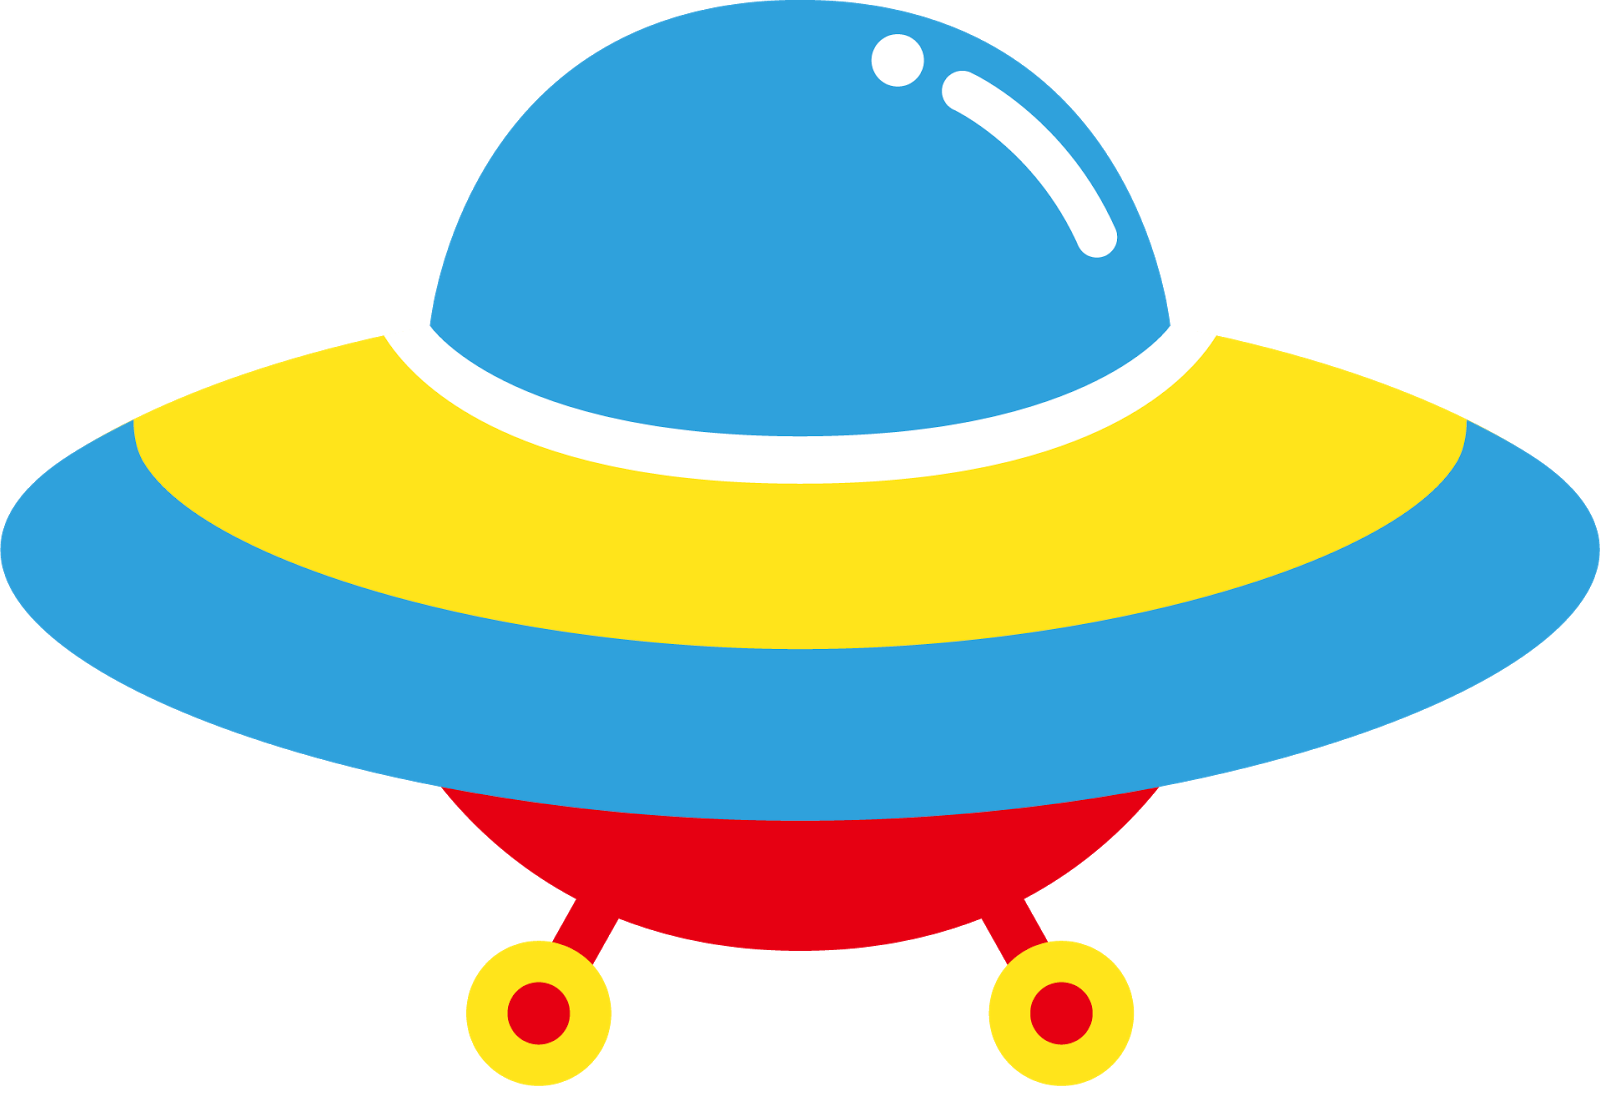 Spaceship clipart yellow. Aliens astronauts and spaceships